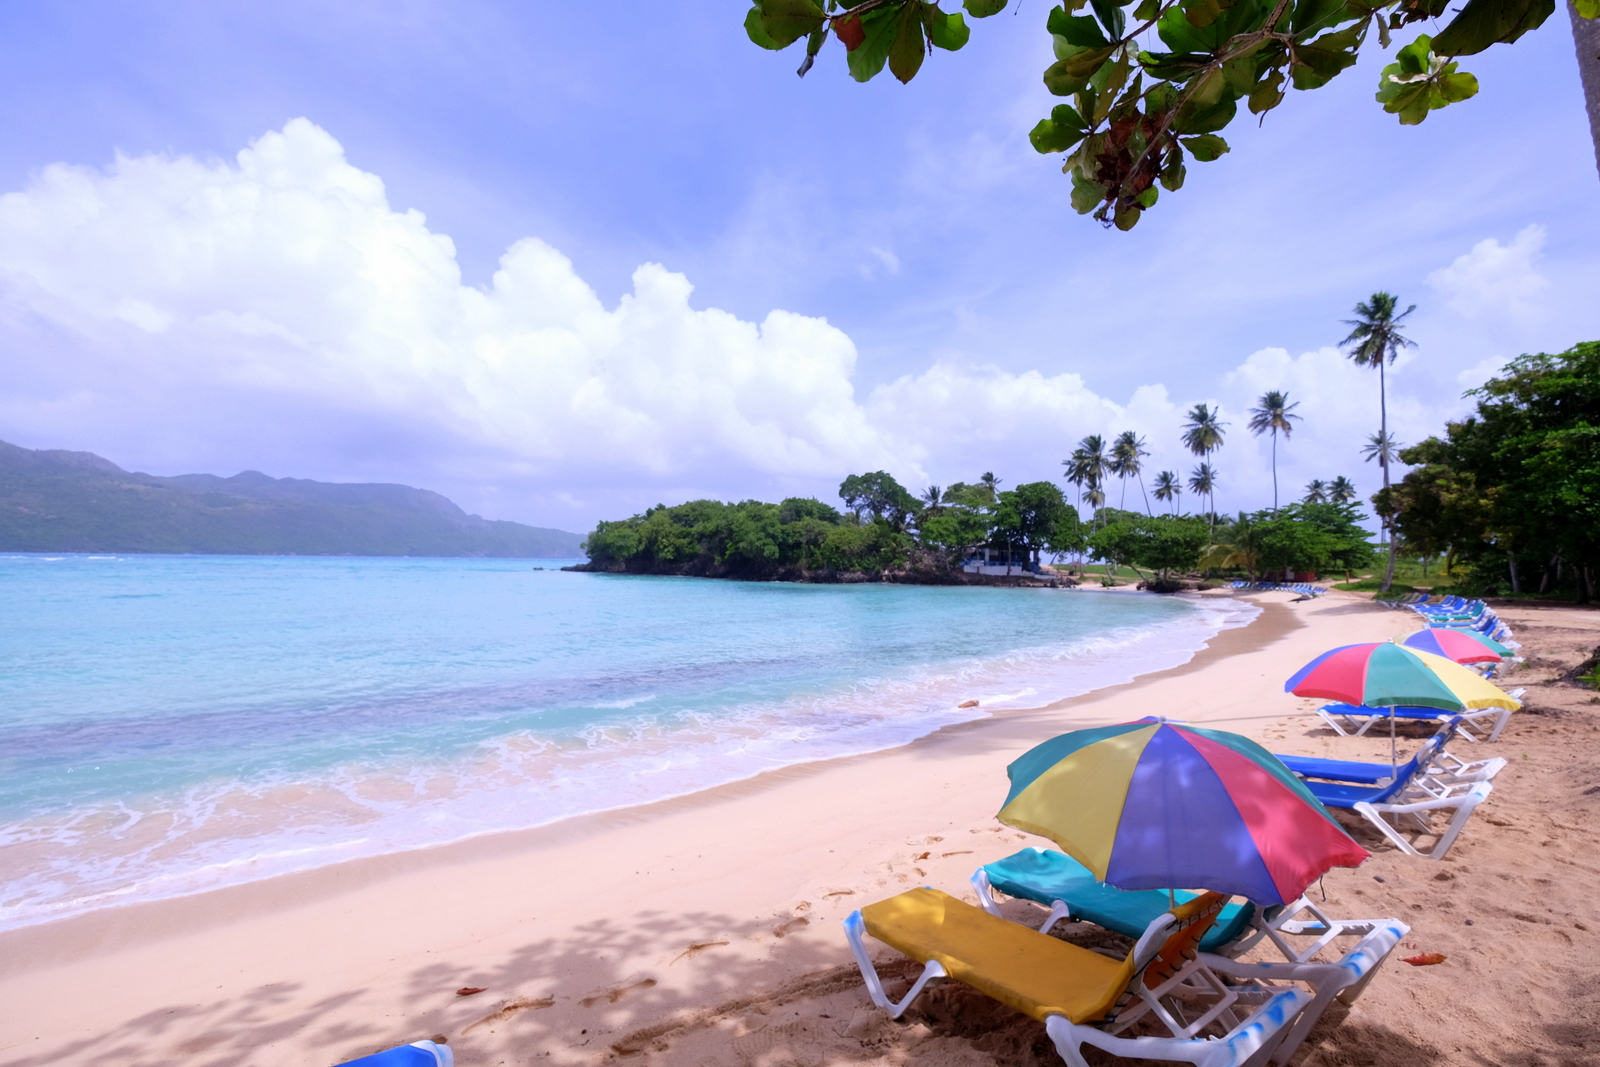 Playa Rincon is a beauty of a beach in the Samana region of the Dominican Republic.  - JIM BYERS PHOTO